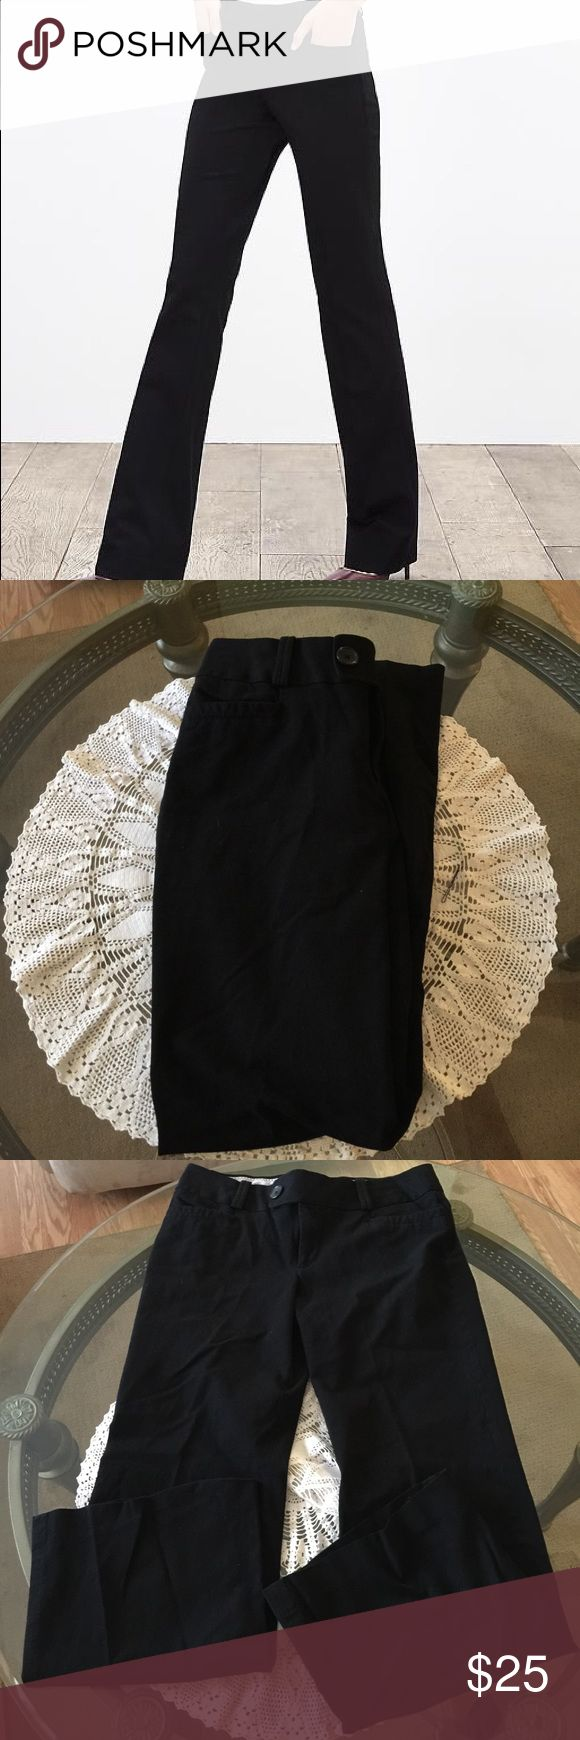 Banana Republic Pants Banana Republic trouser no 323 Martin fit. Stretchy. Excellent condition though may be a little linty from storage. No holes or stains. Inseam is 27 1/2 inches and length is 39 1/2 inches Banana Republic Pants Trousers